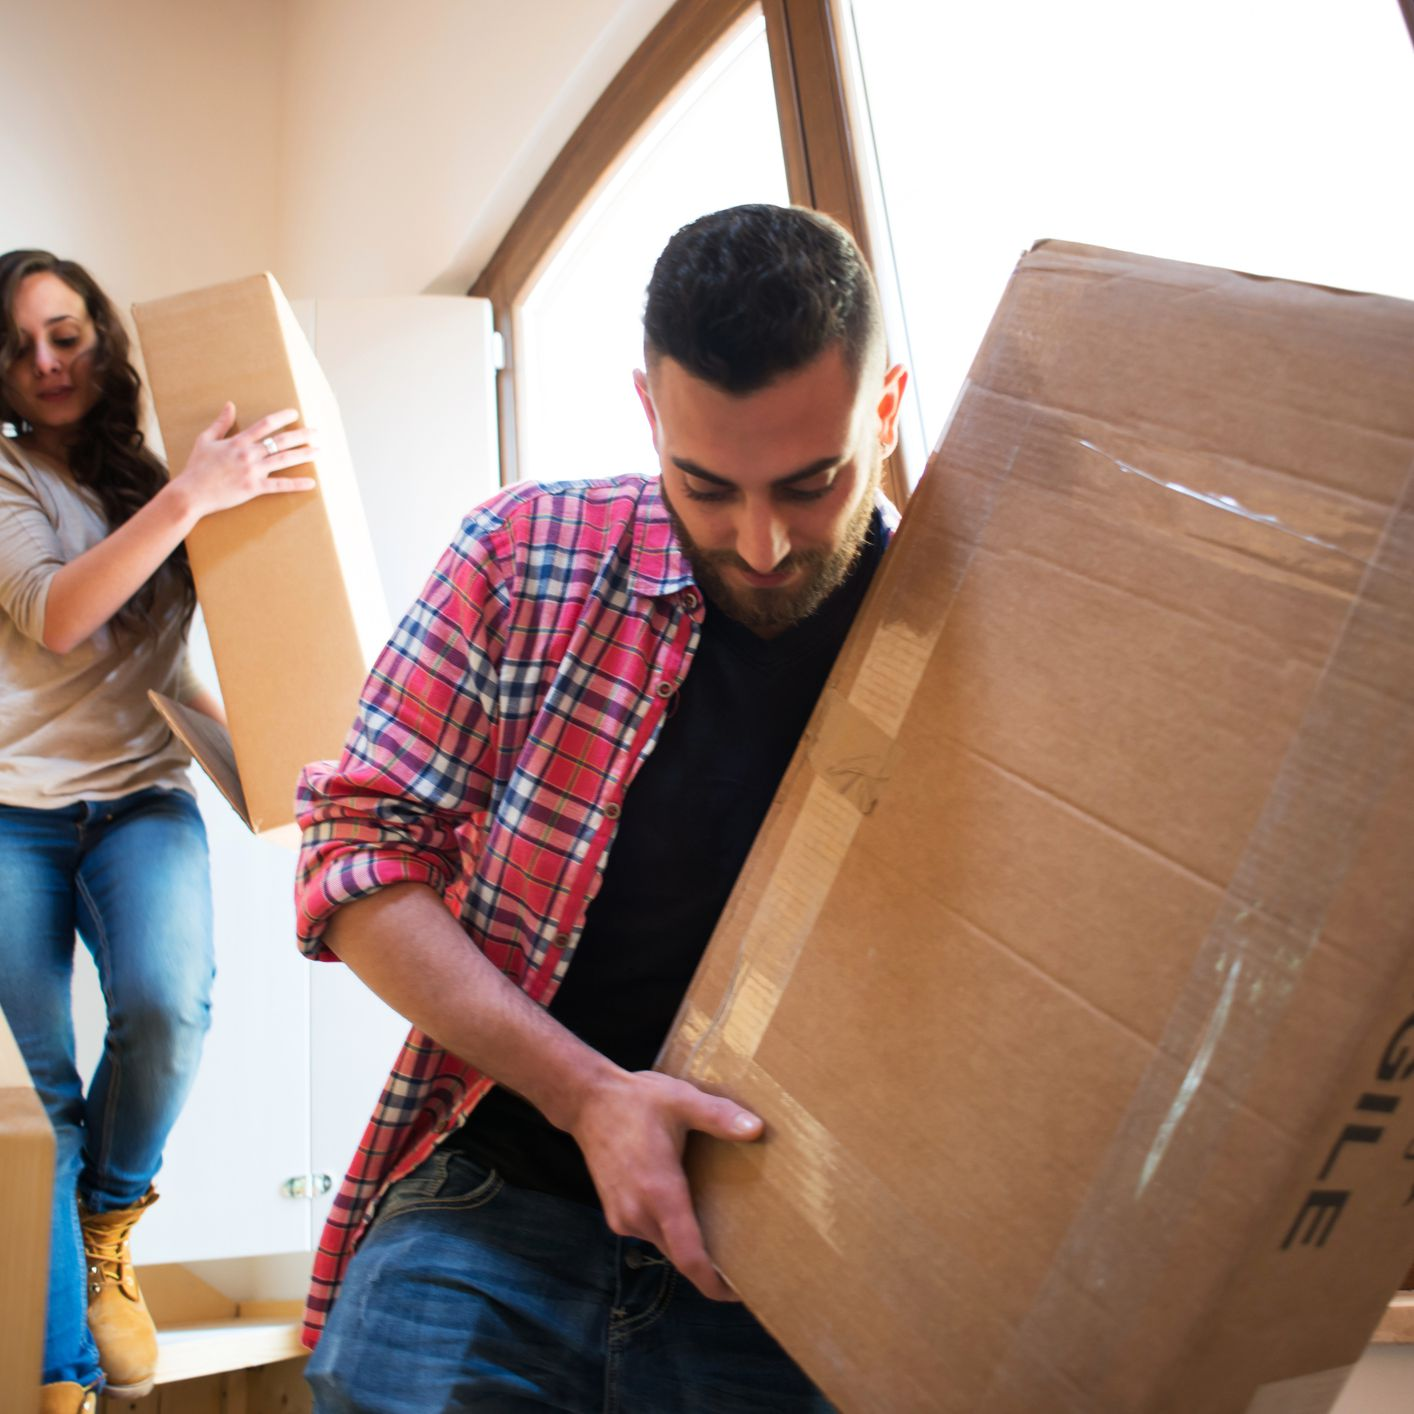 Are Personal Loans a Good Choice for Moving Expenses?